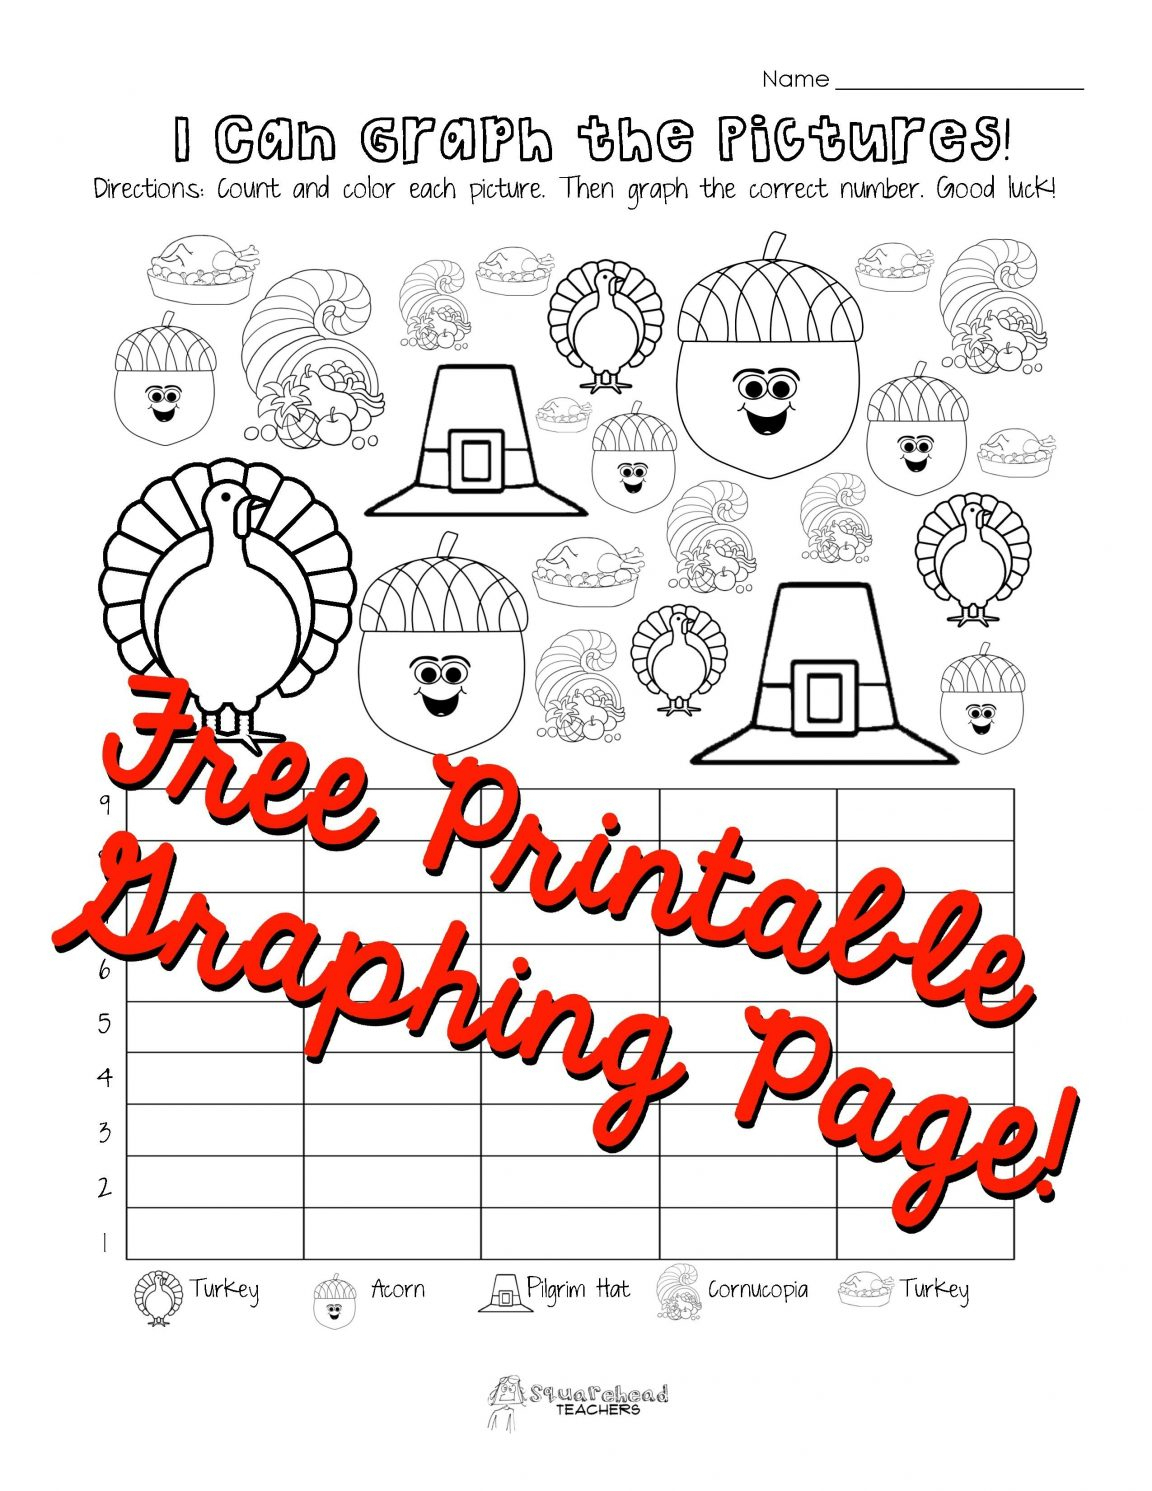 Free Printable Third Grade Math Worksheets Math Worksheets Free | Free Printable Thanksgiving Math Worksheets For 3Rd Grade